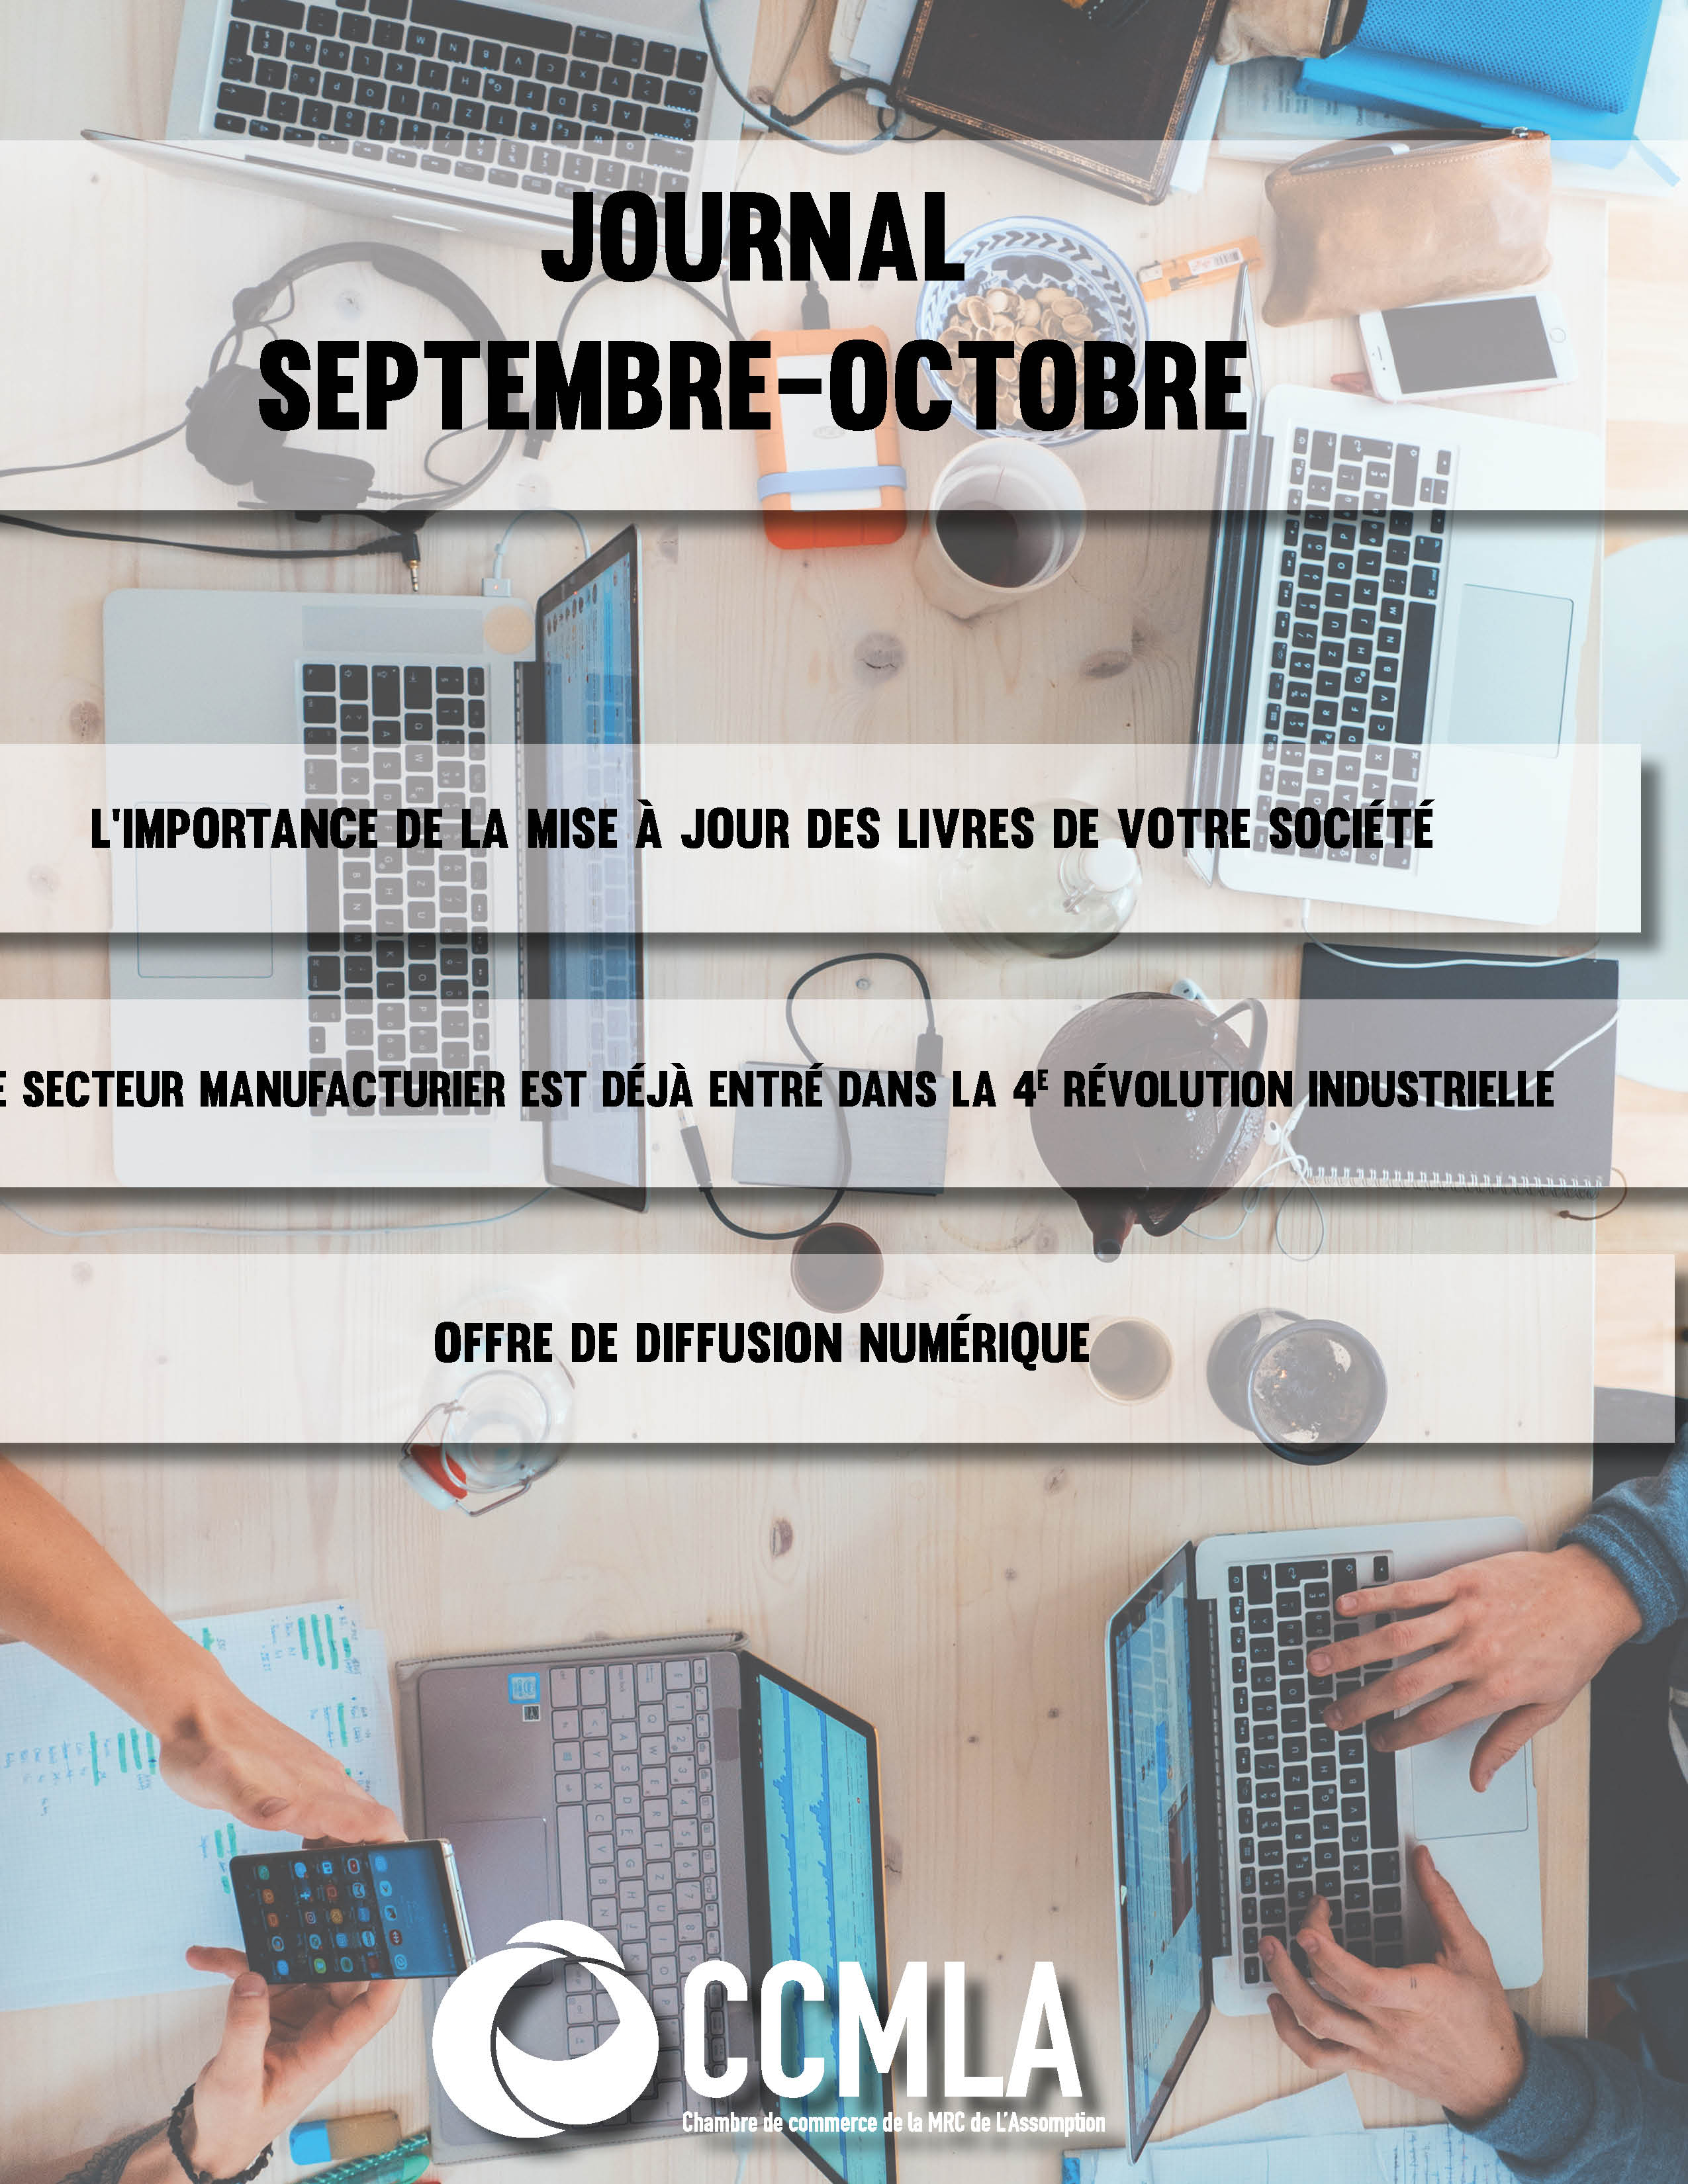 Journal septembre-octobre